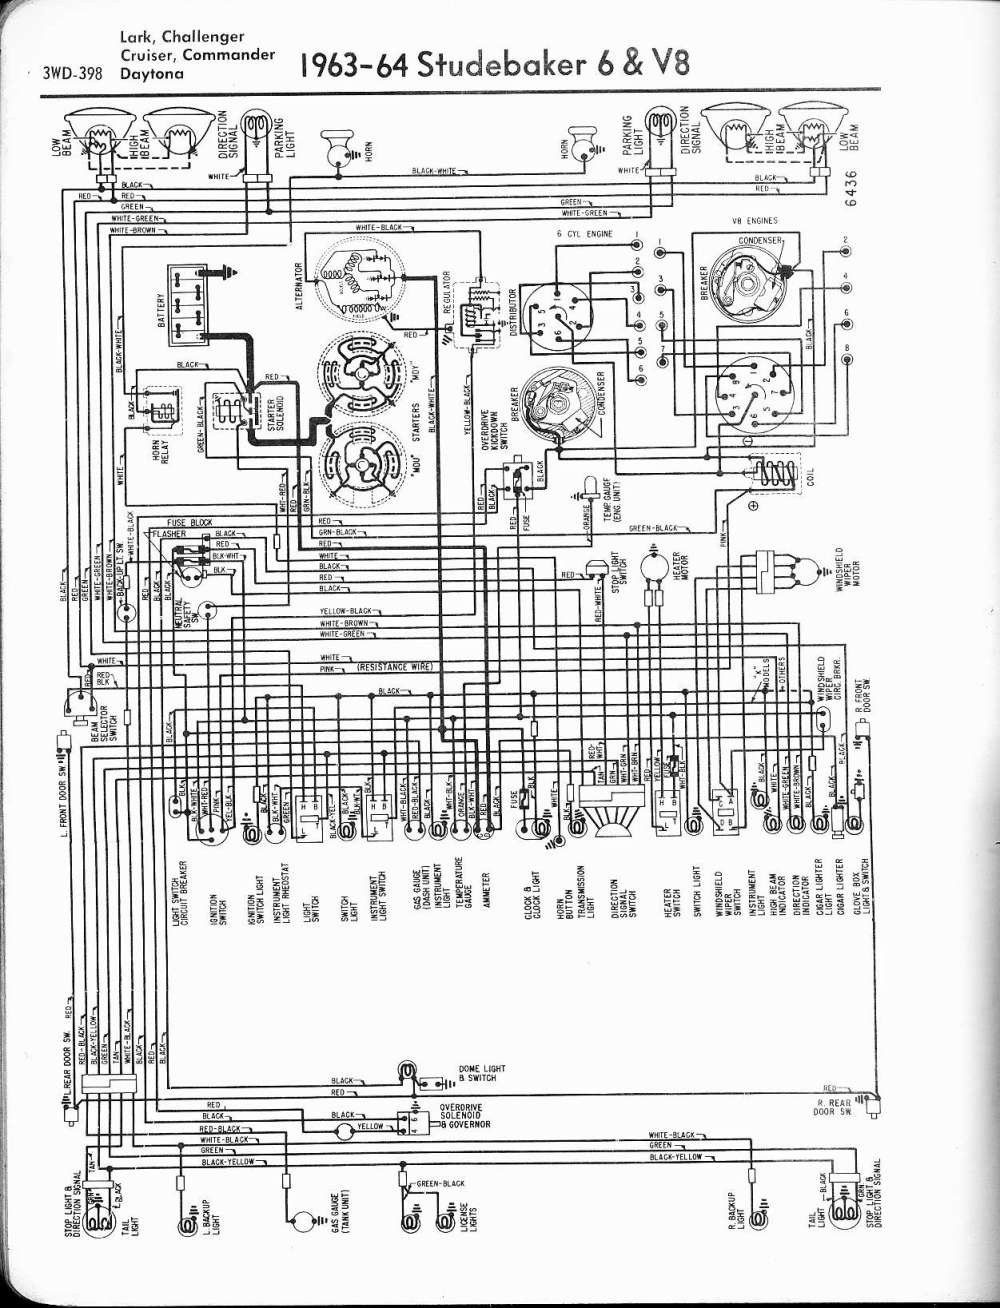 medium resolution of studebaker wiring diagrams the old car manual project 1963 64 6 cyl v8 lark